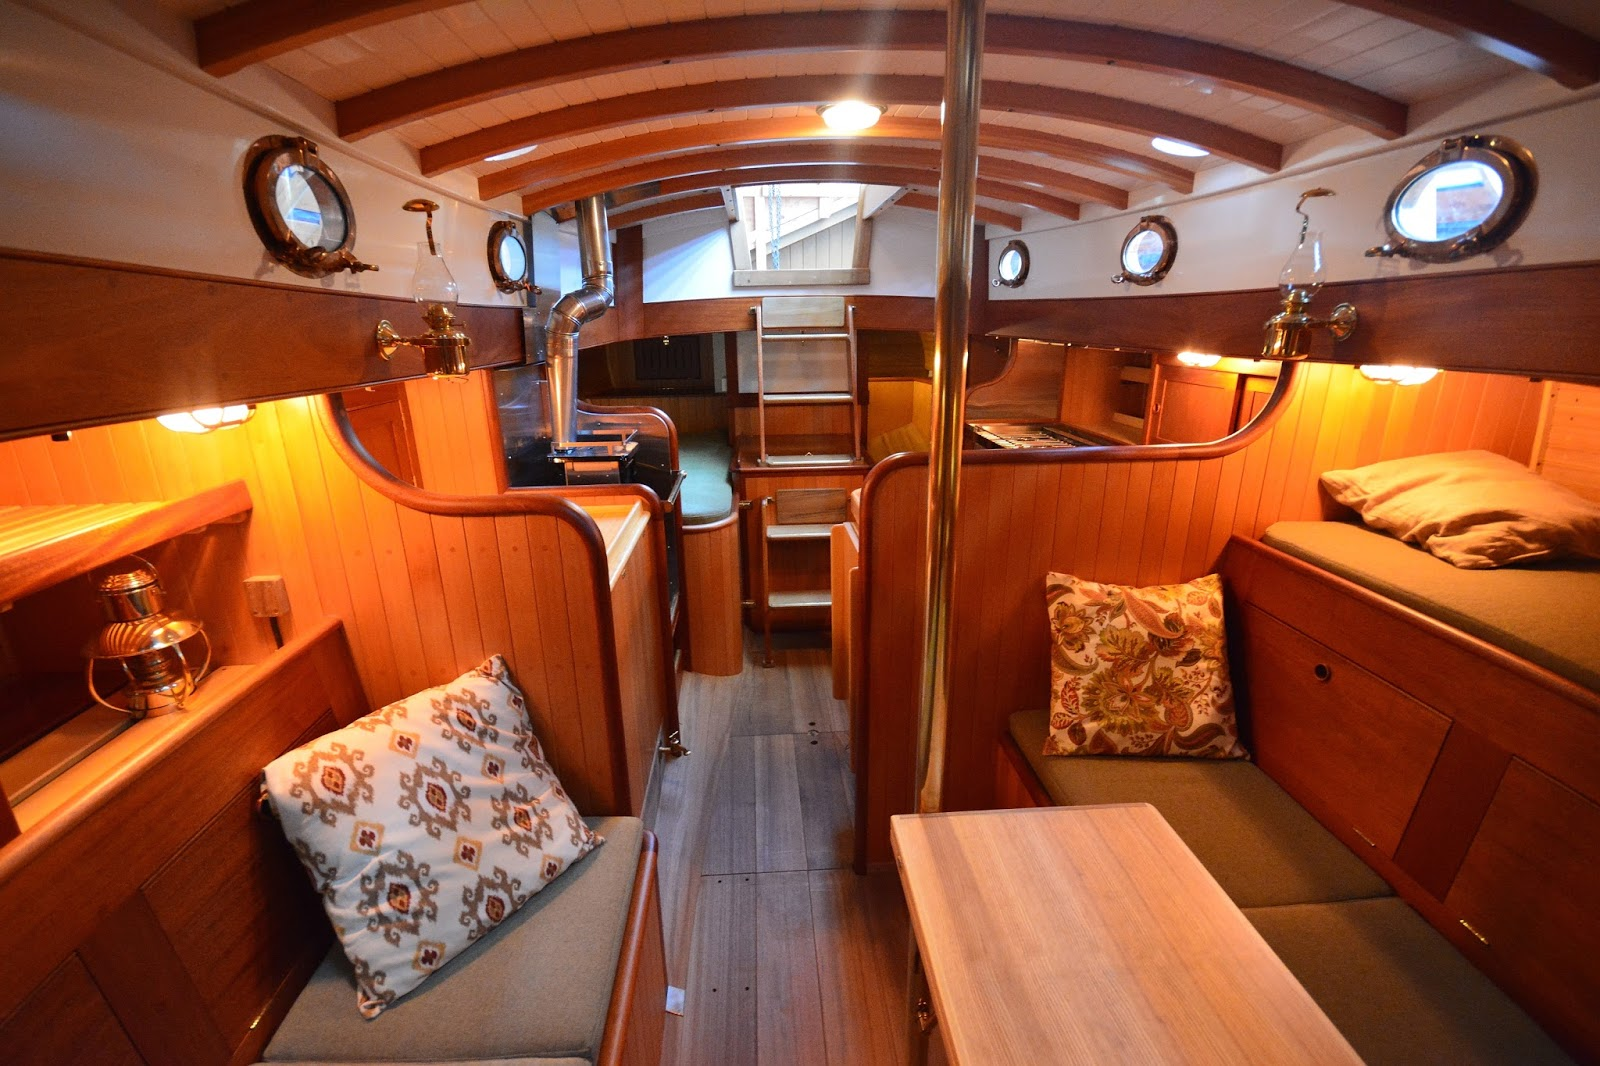 Building a 34 ft Lyle Hess Falmouth Cutter: Interior Photos